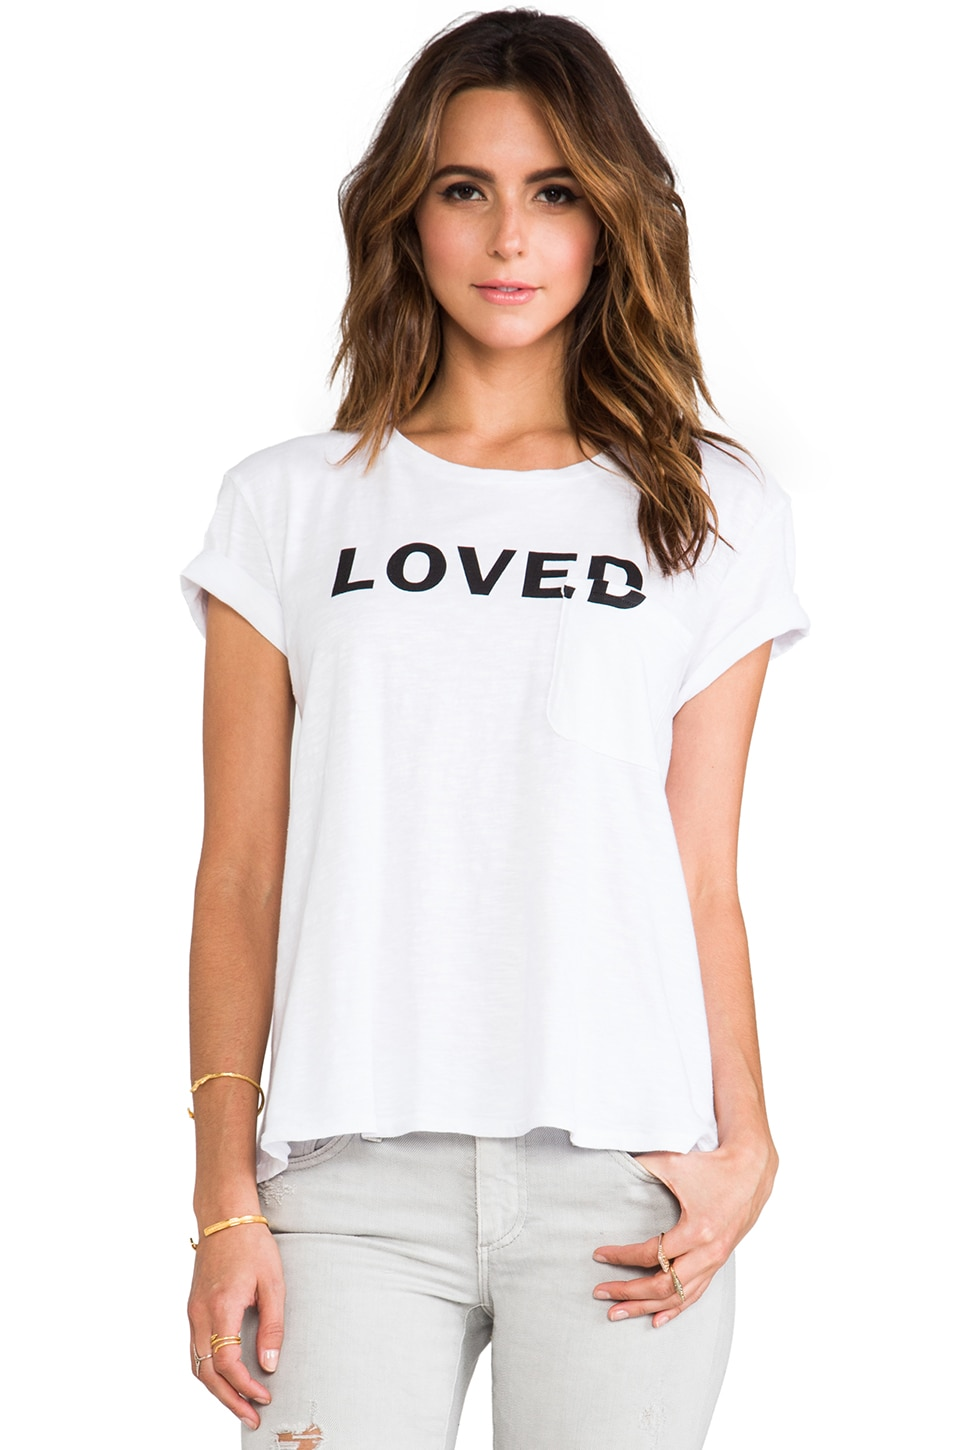 TEXTILE Elizabeth and James Love Bowery Tee in White/Black